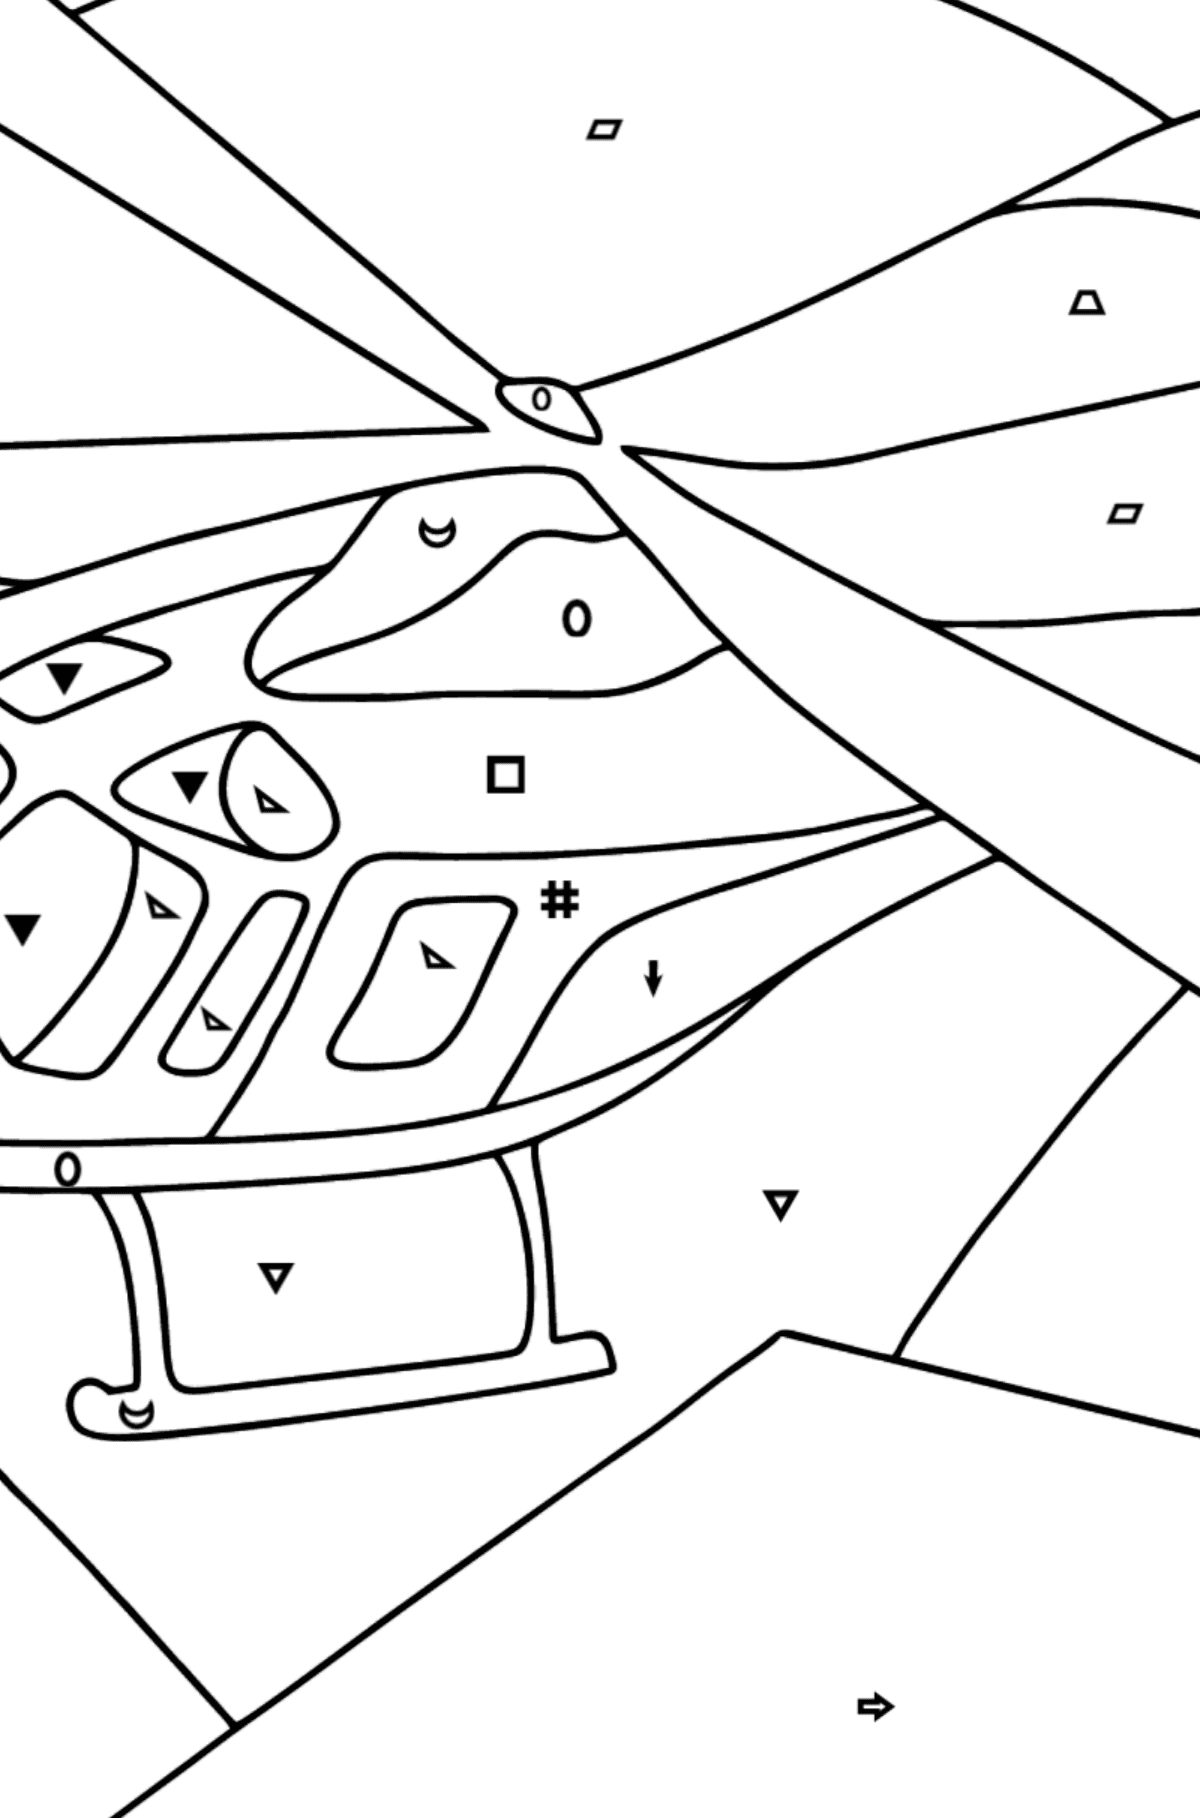 Coloring Page - A Sport Helicopter - Coloring by Symbols and Geometric Shapes for Kids